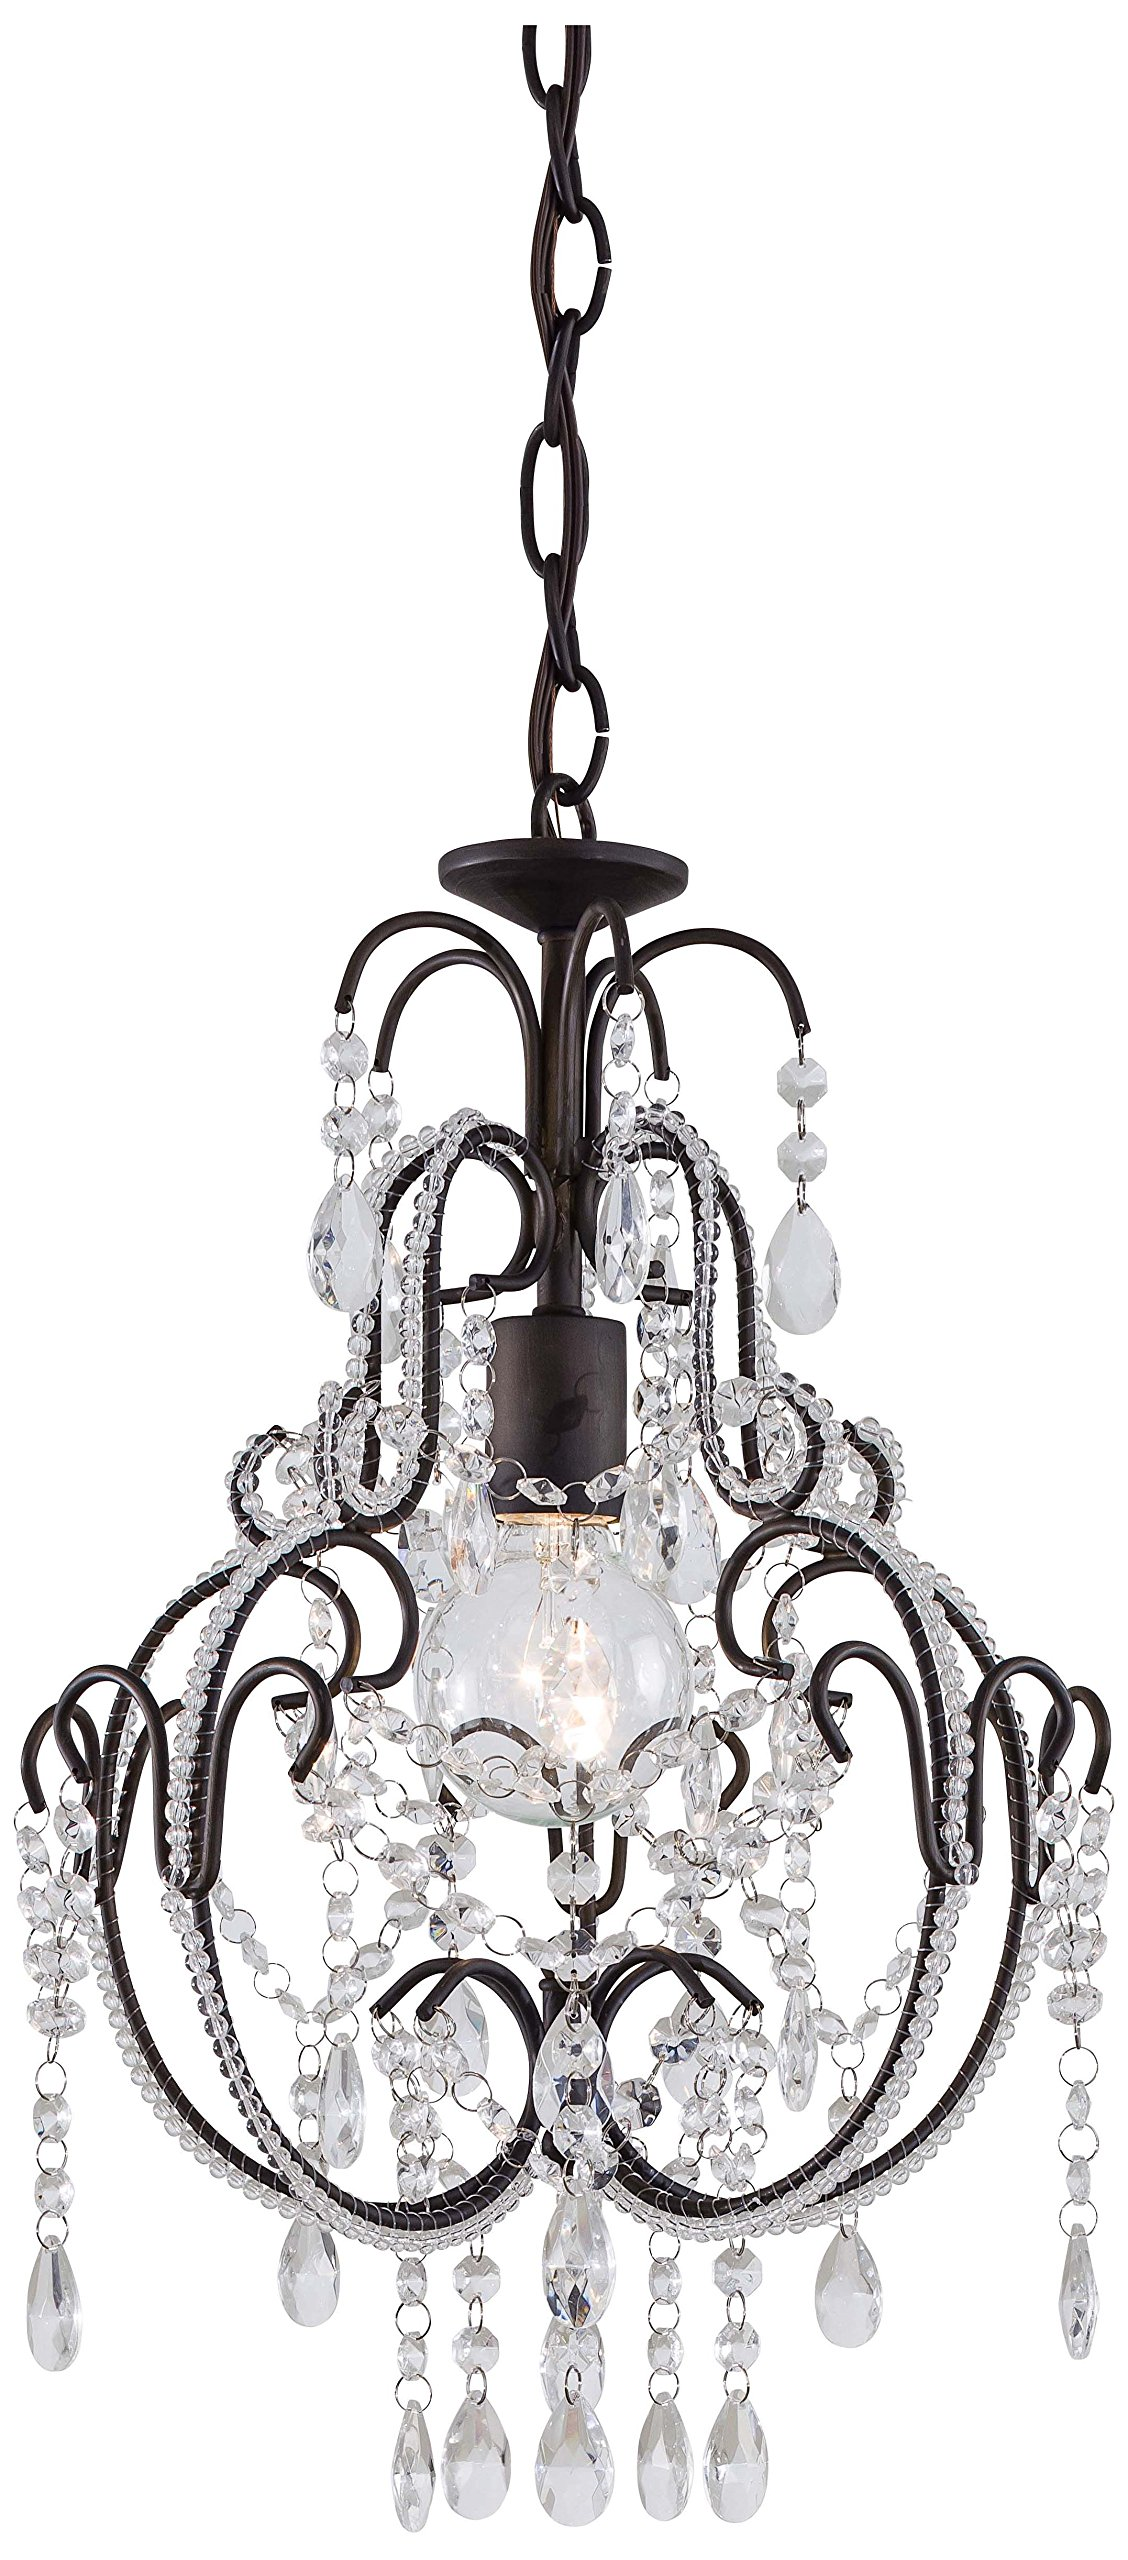 Minka Lavery 3123-489, Mini Crystal Chandelier Lighting, 1 Light, 60 Watts, Bronze by Minka